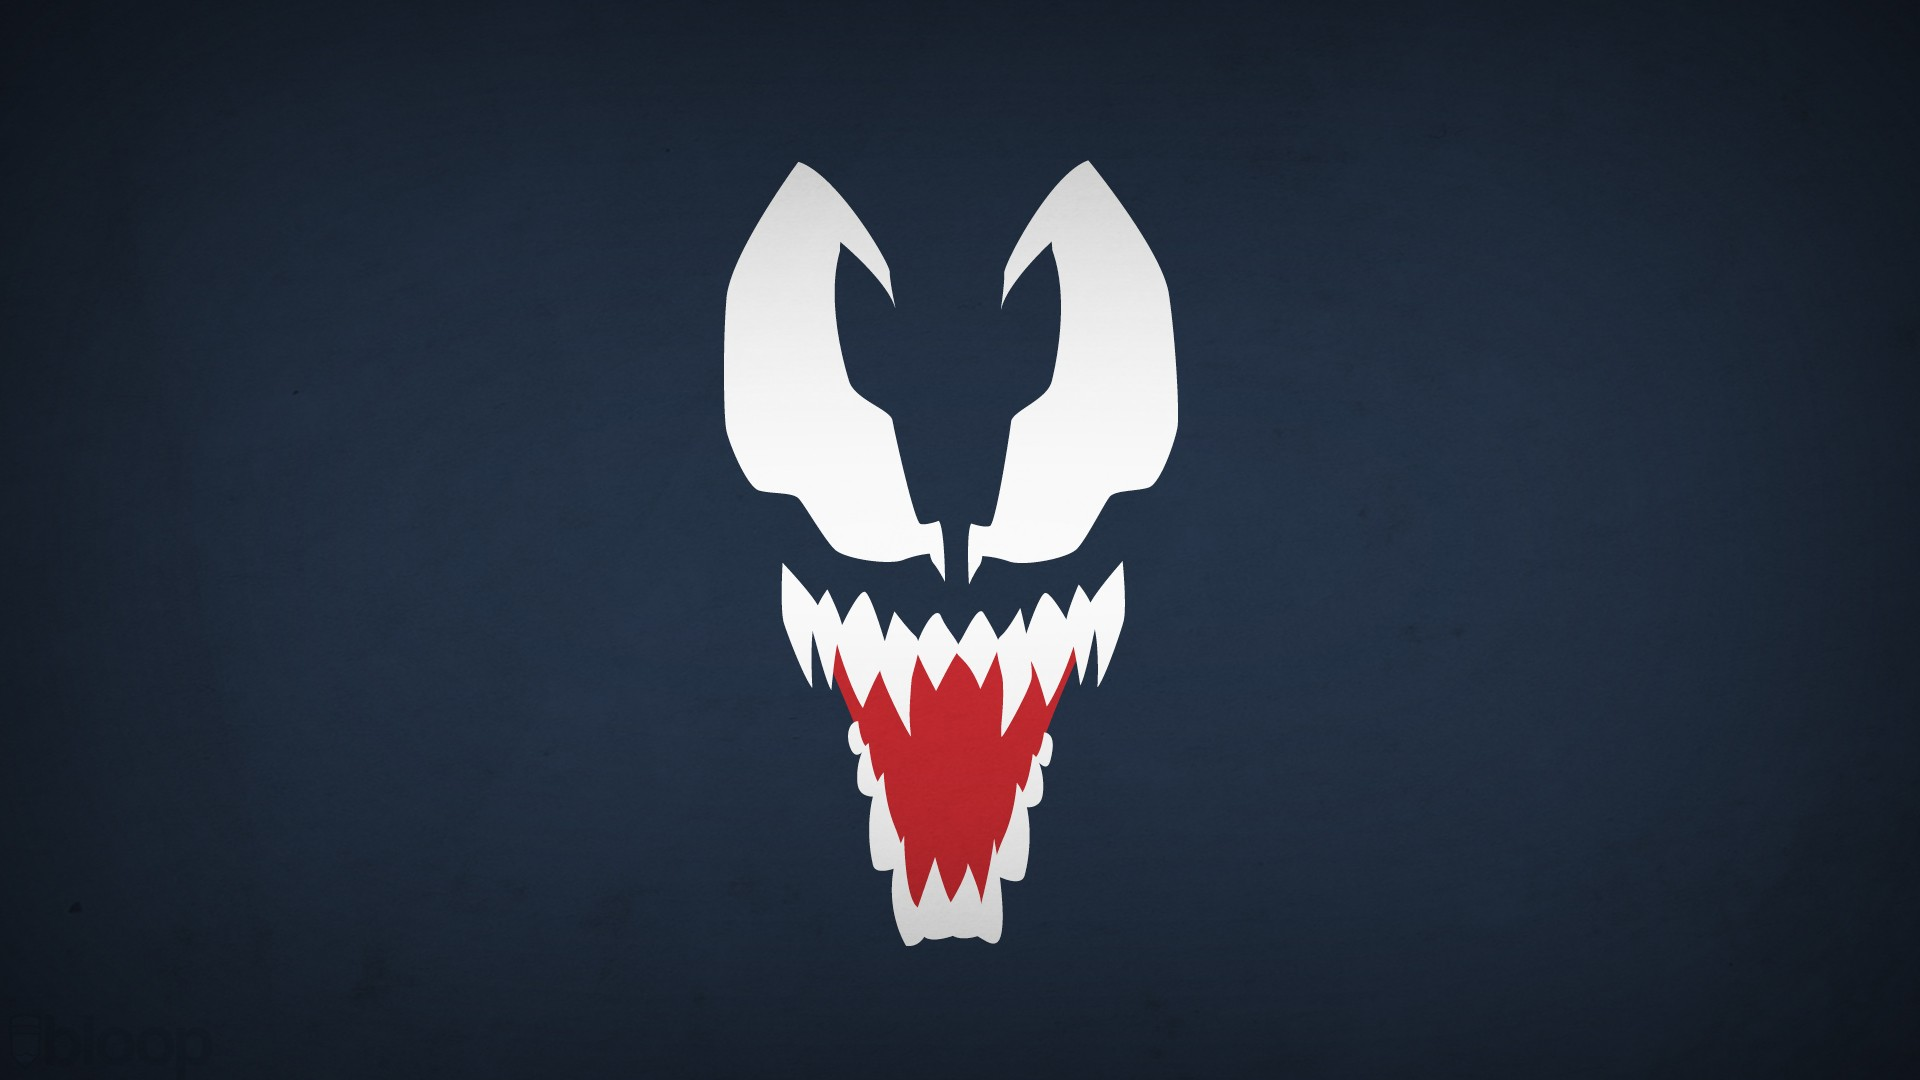 Spider Man Venom Minimalism Blo0p Villain Wallpaper 104389